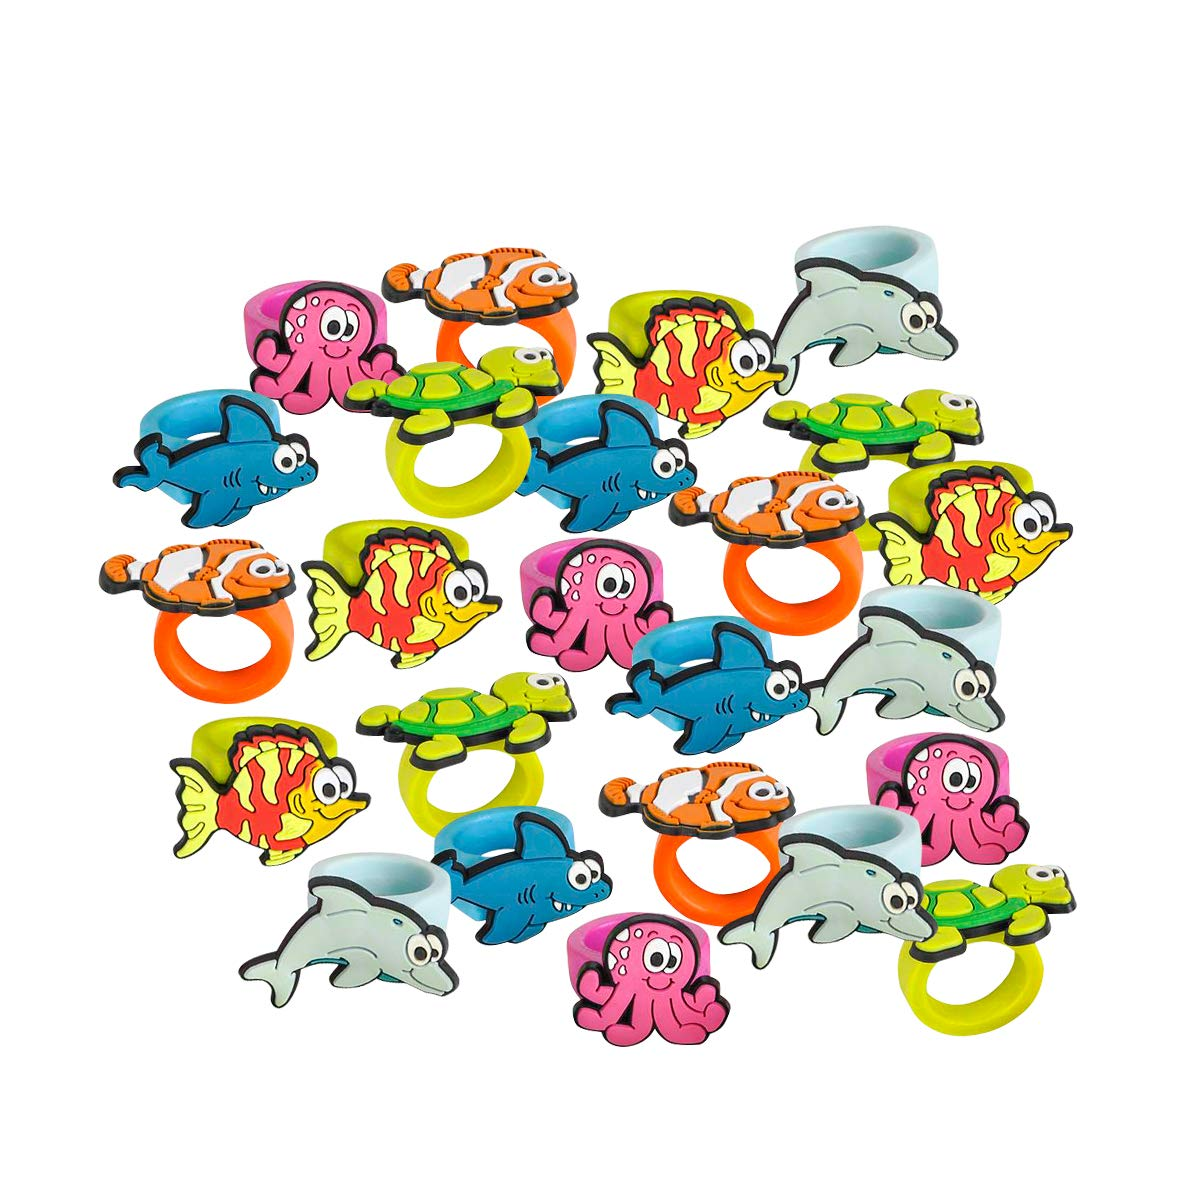 Kicko Sea Life Rubber Rings - Pack of 24 1 Inch Party Favor Rings for Children Fashion Accessory, Pretend Play, Cake Toppers, and Marine themed Party Supplies by Kicko